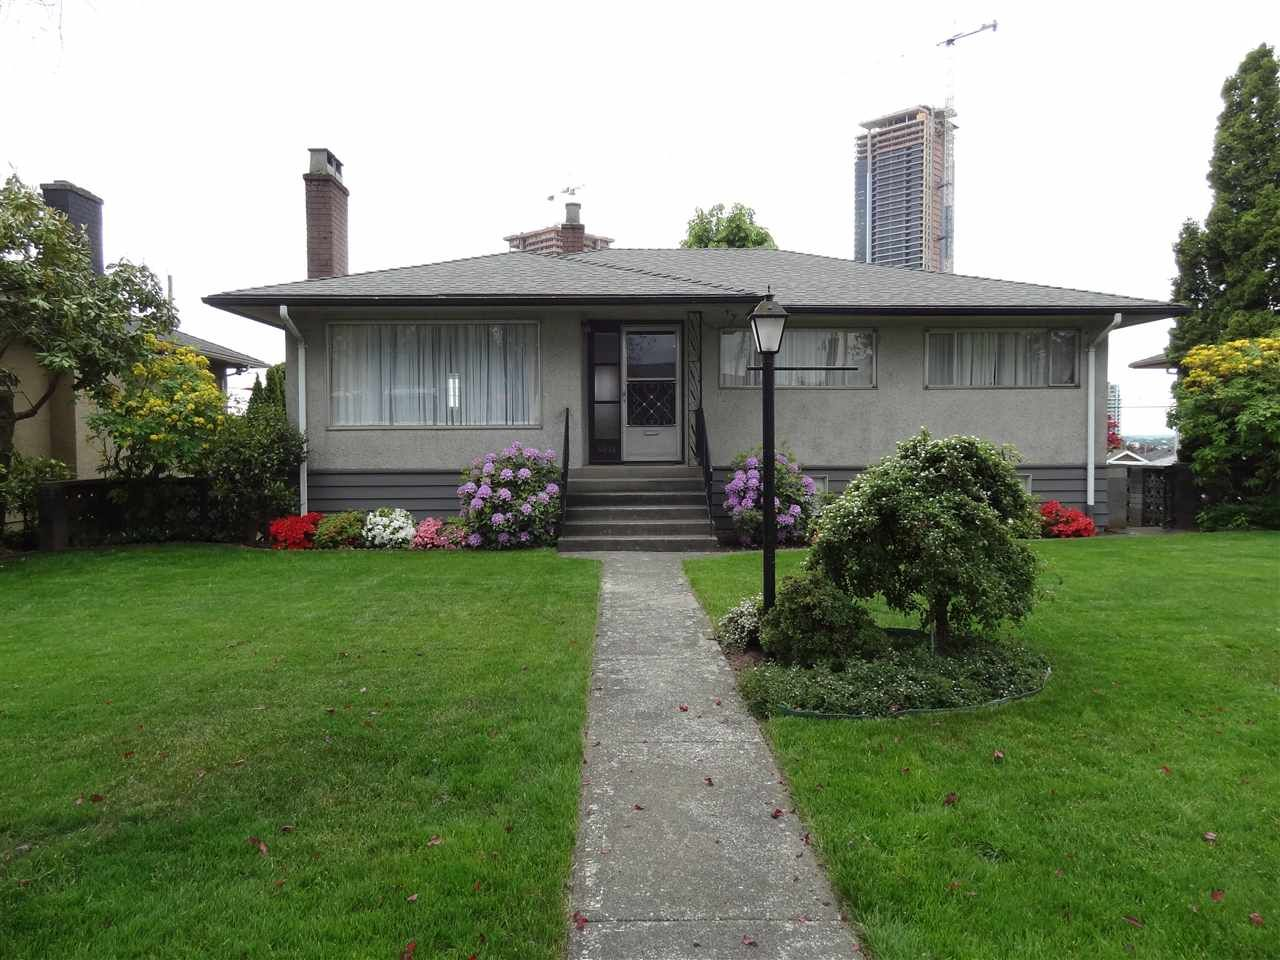 """Main Photo: 4672 HIGHLAWN Drive in Burnaby: Brentwood Park House for sale in """"BRENTWOOD"""" (Burnaby North)  : MLS®# R2443441"""